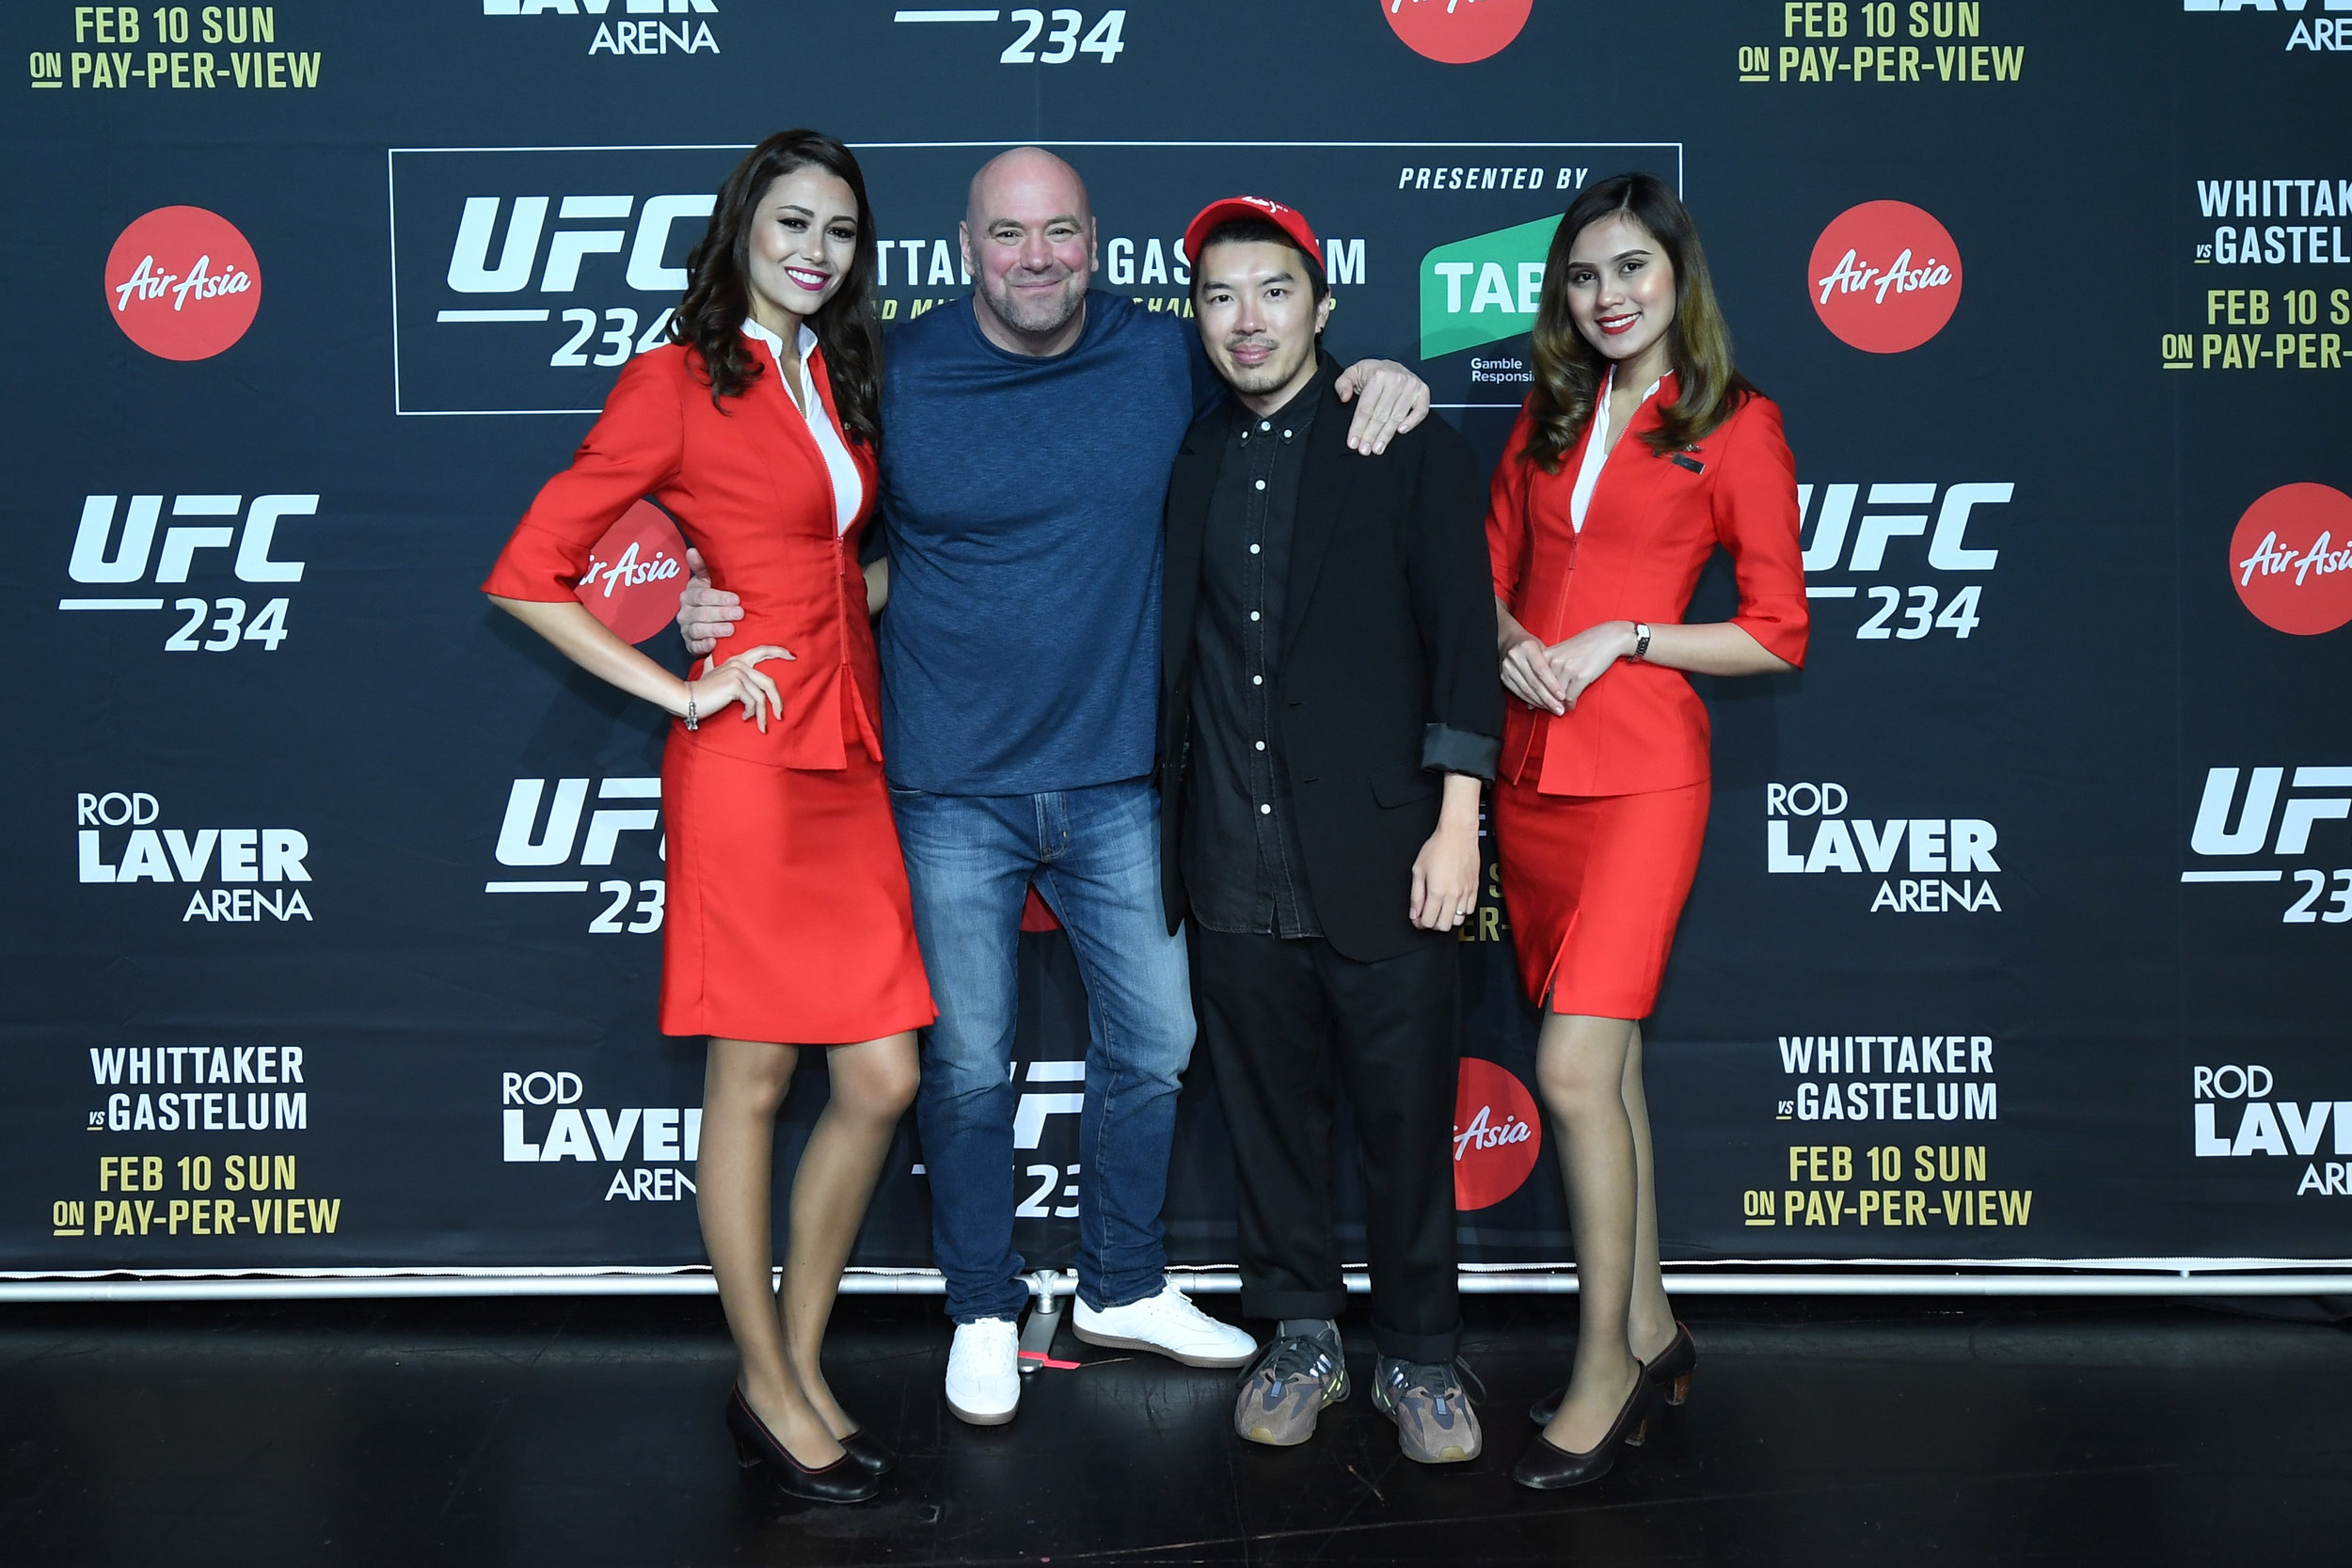 Photo Caption:  (2nd from left) UFC President Dana White and AirAsia Group Head of Branding Rudy Khaw flanked by AirAsia Cabin Crew